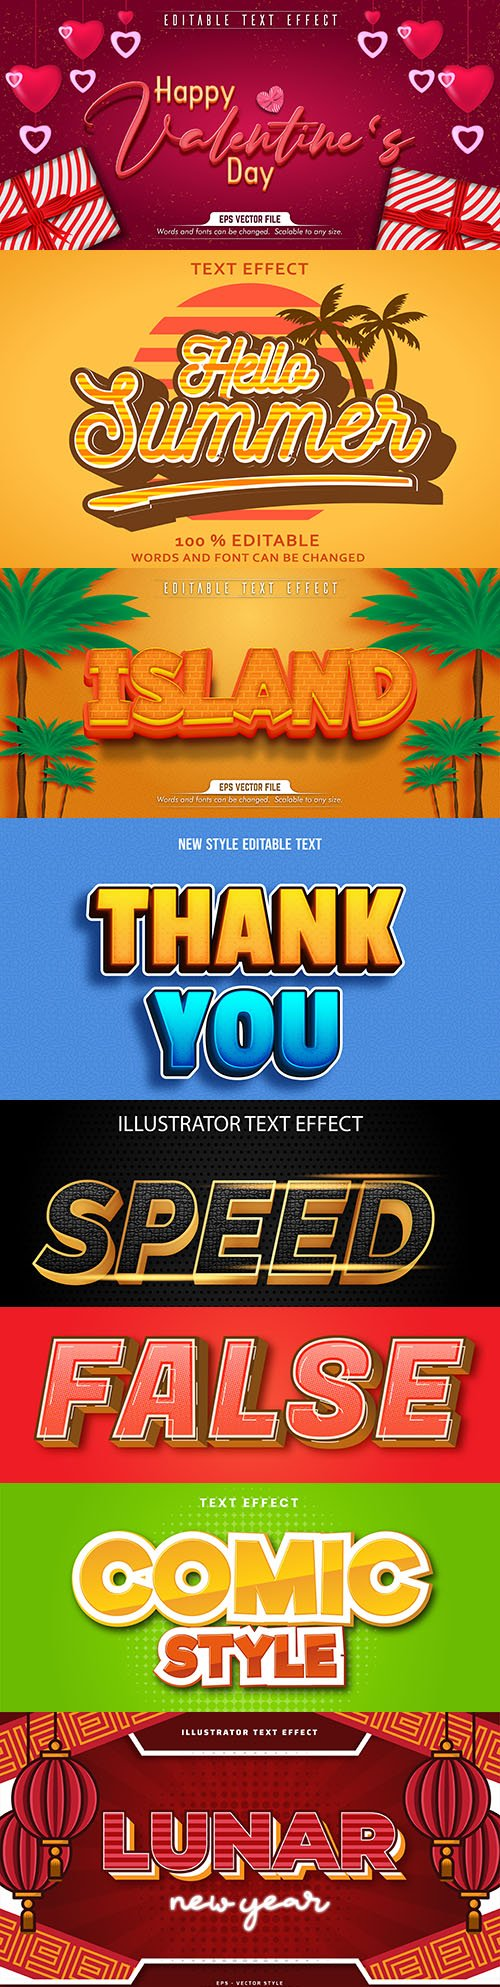 Editable font and 3d effect text design collection illustration 11